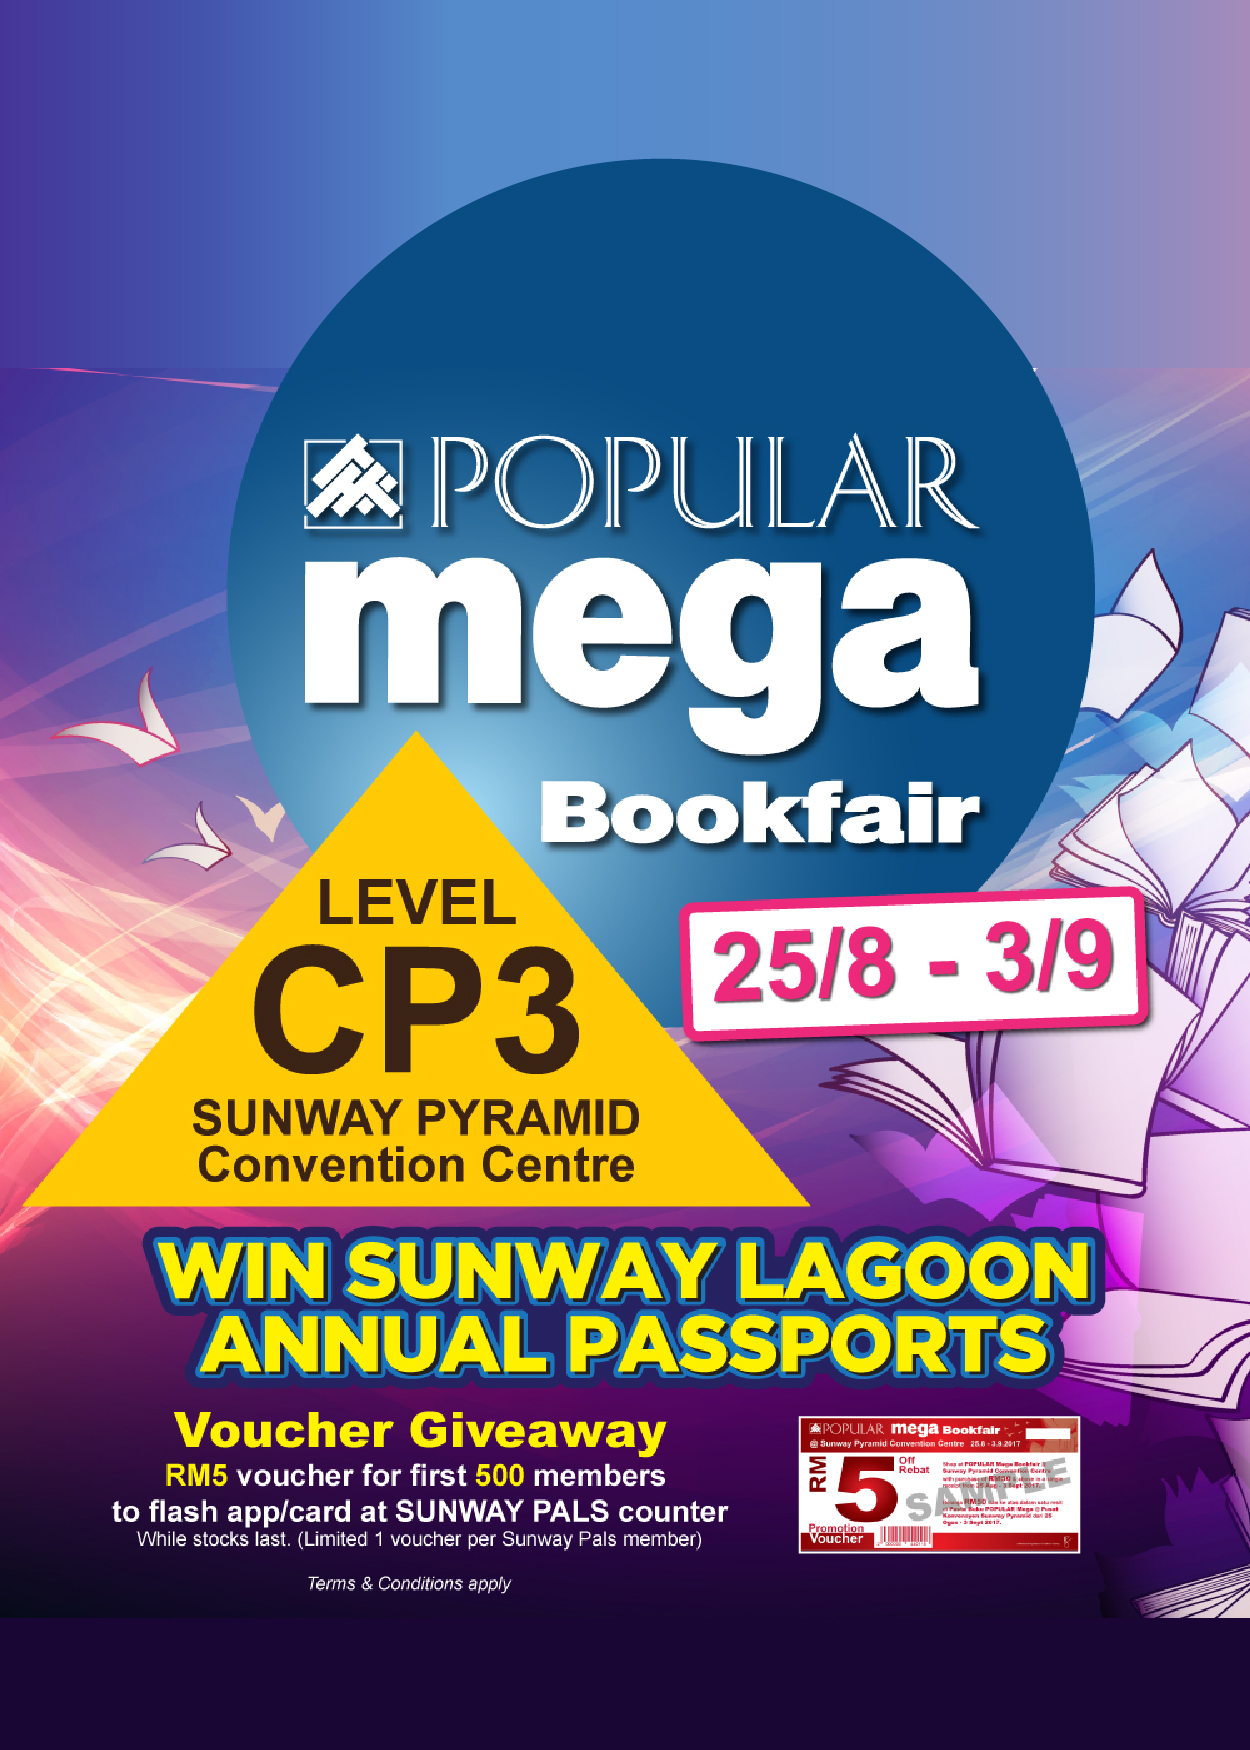 Popular Mega Bookfair @ Sunway Pyramid Convention Centre